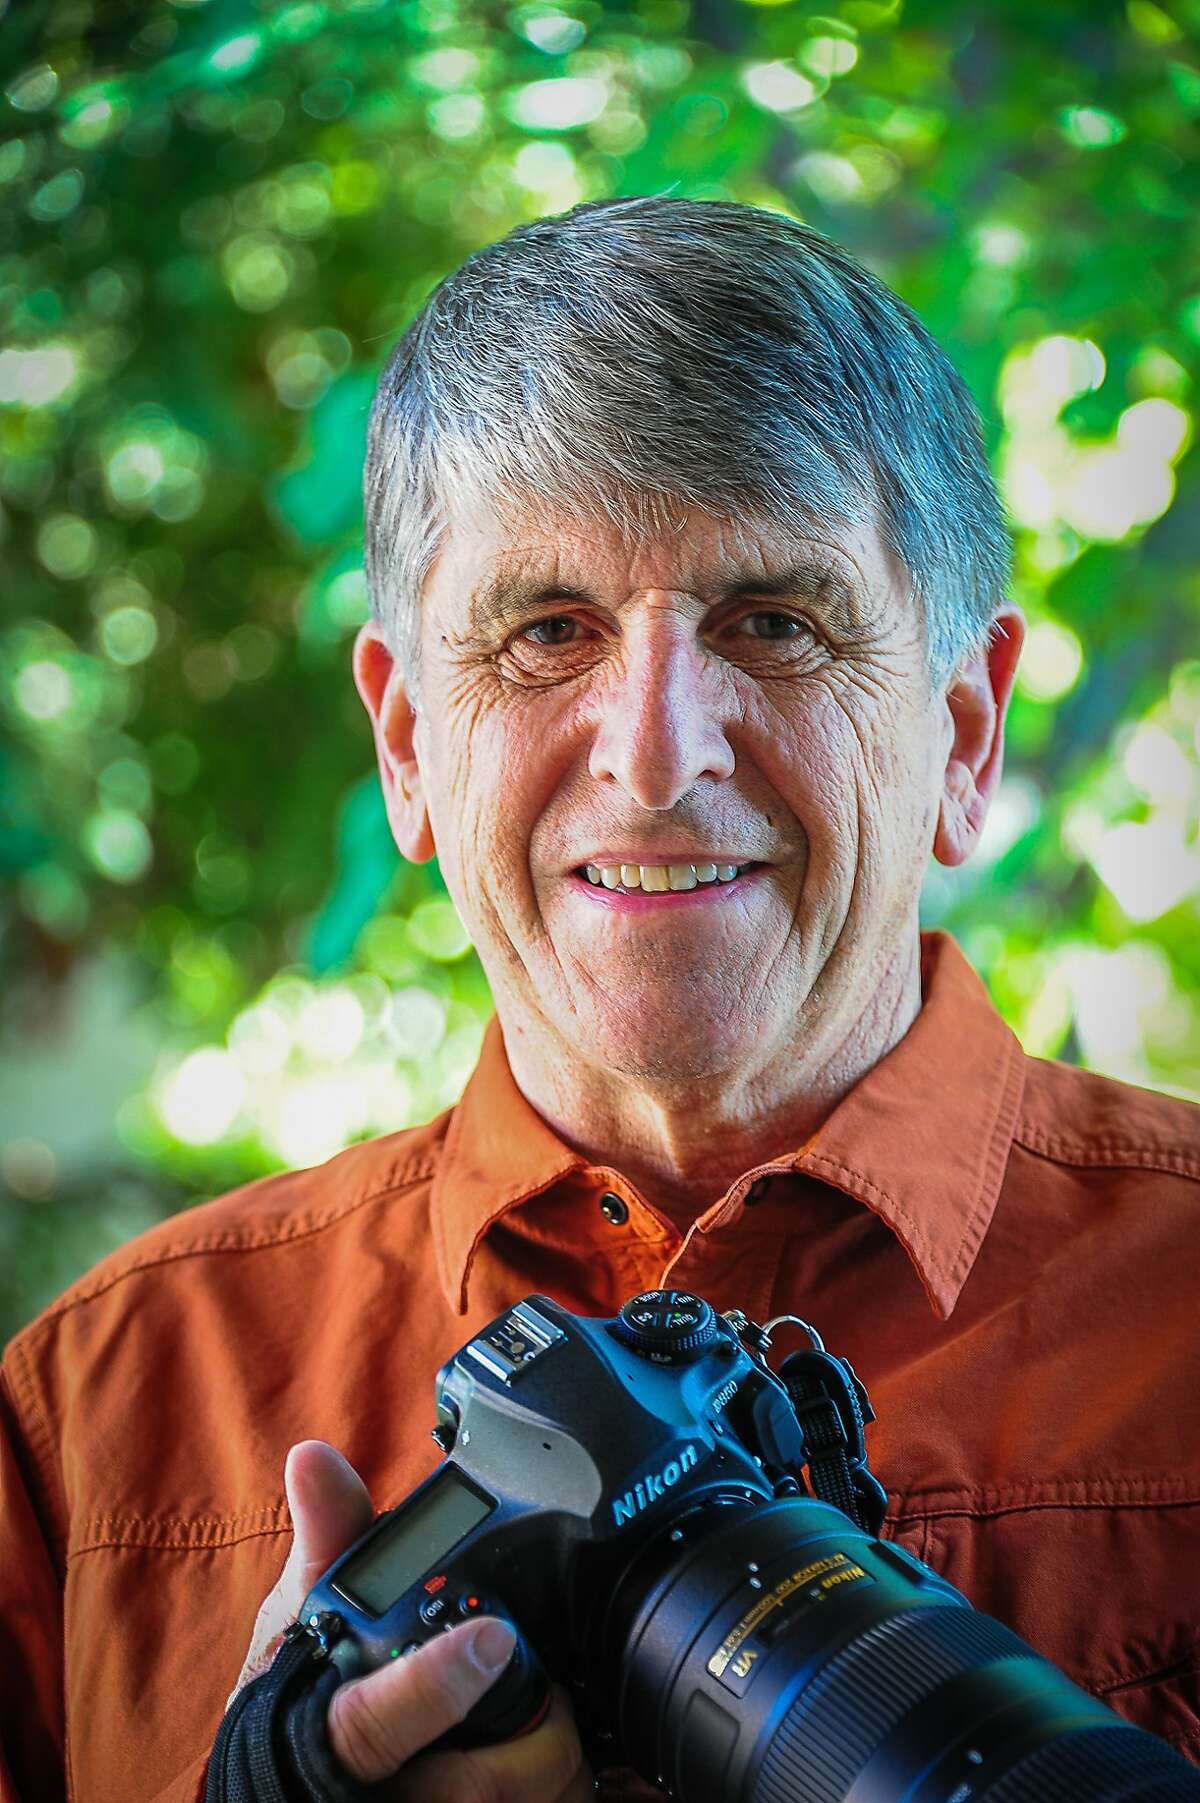 John Poimiroo,�who brought California travel into the lives of millions, was voted into the California Outdoors Hall of Fame